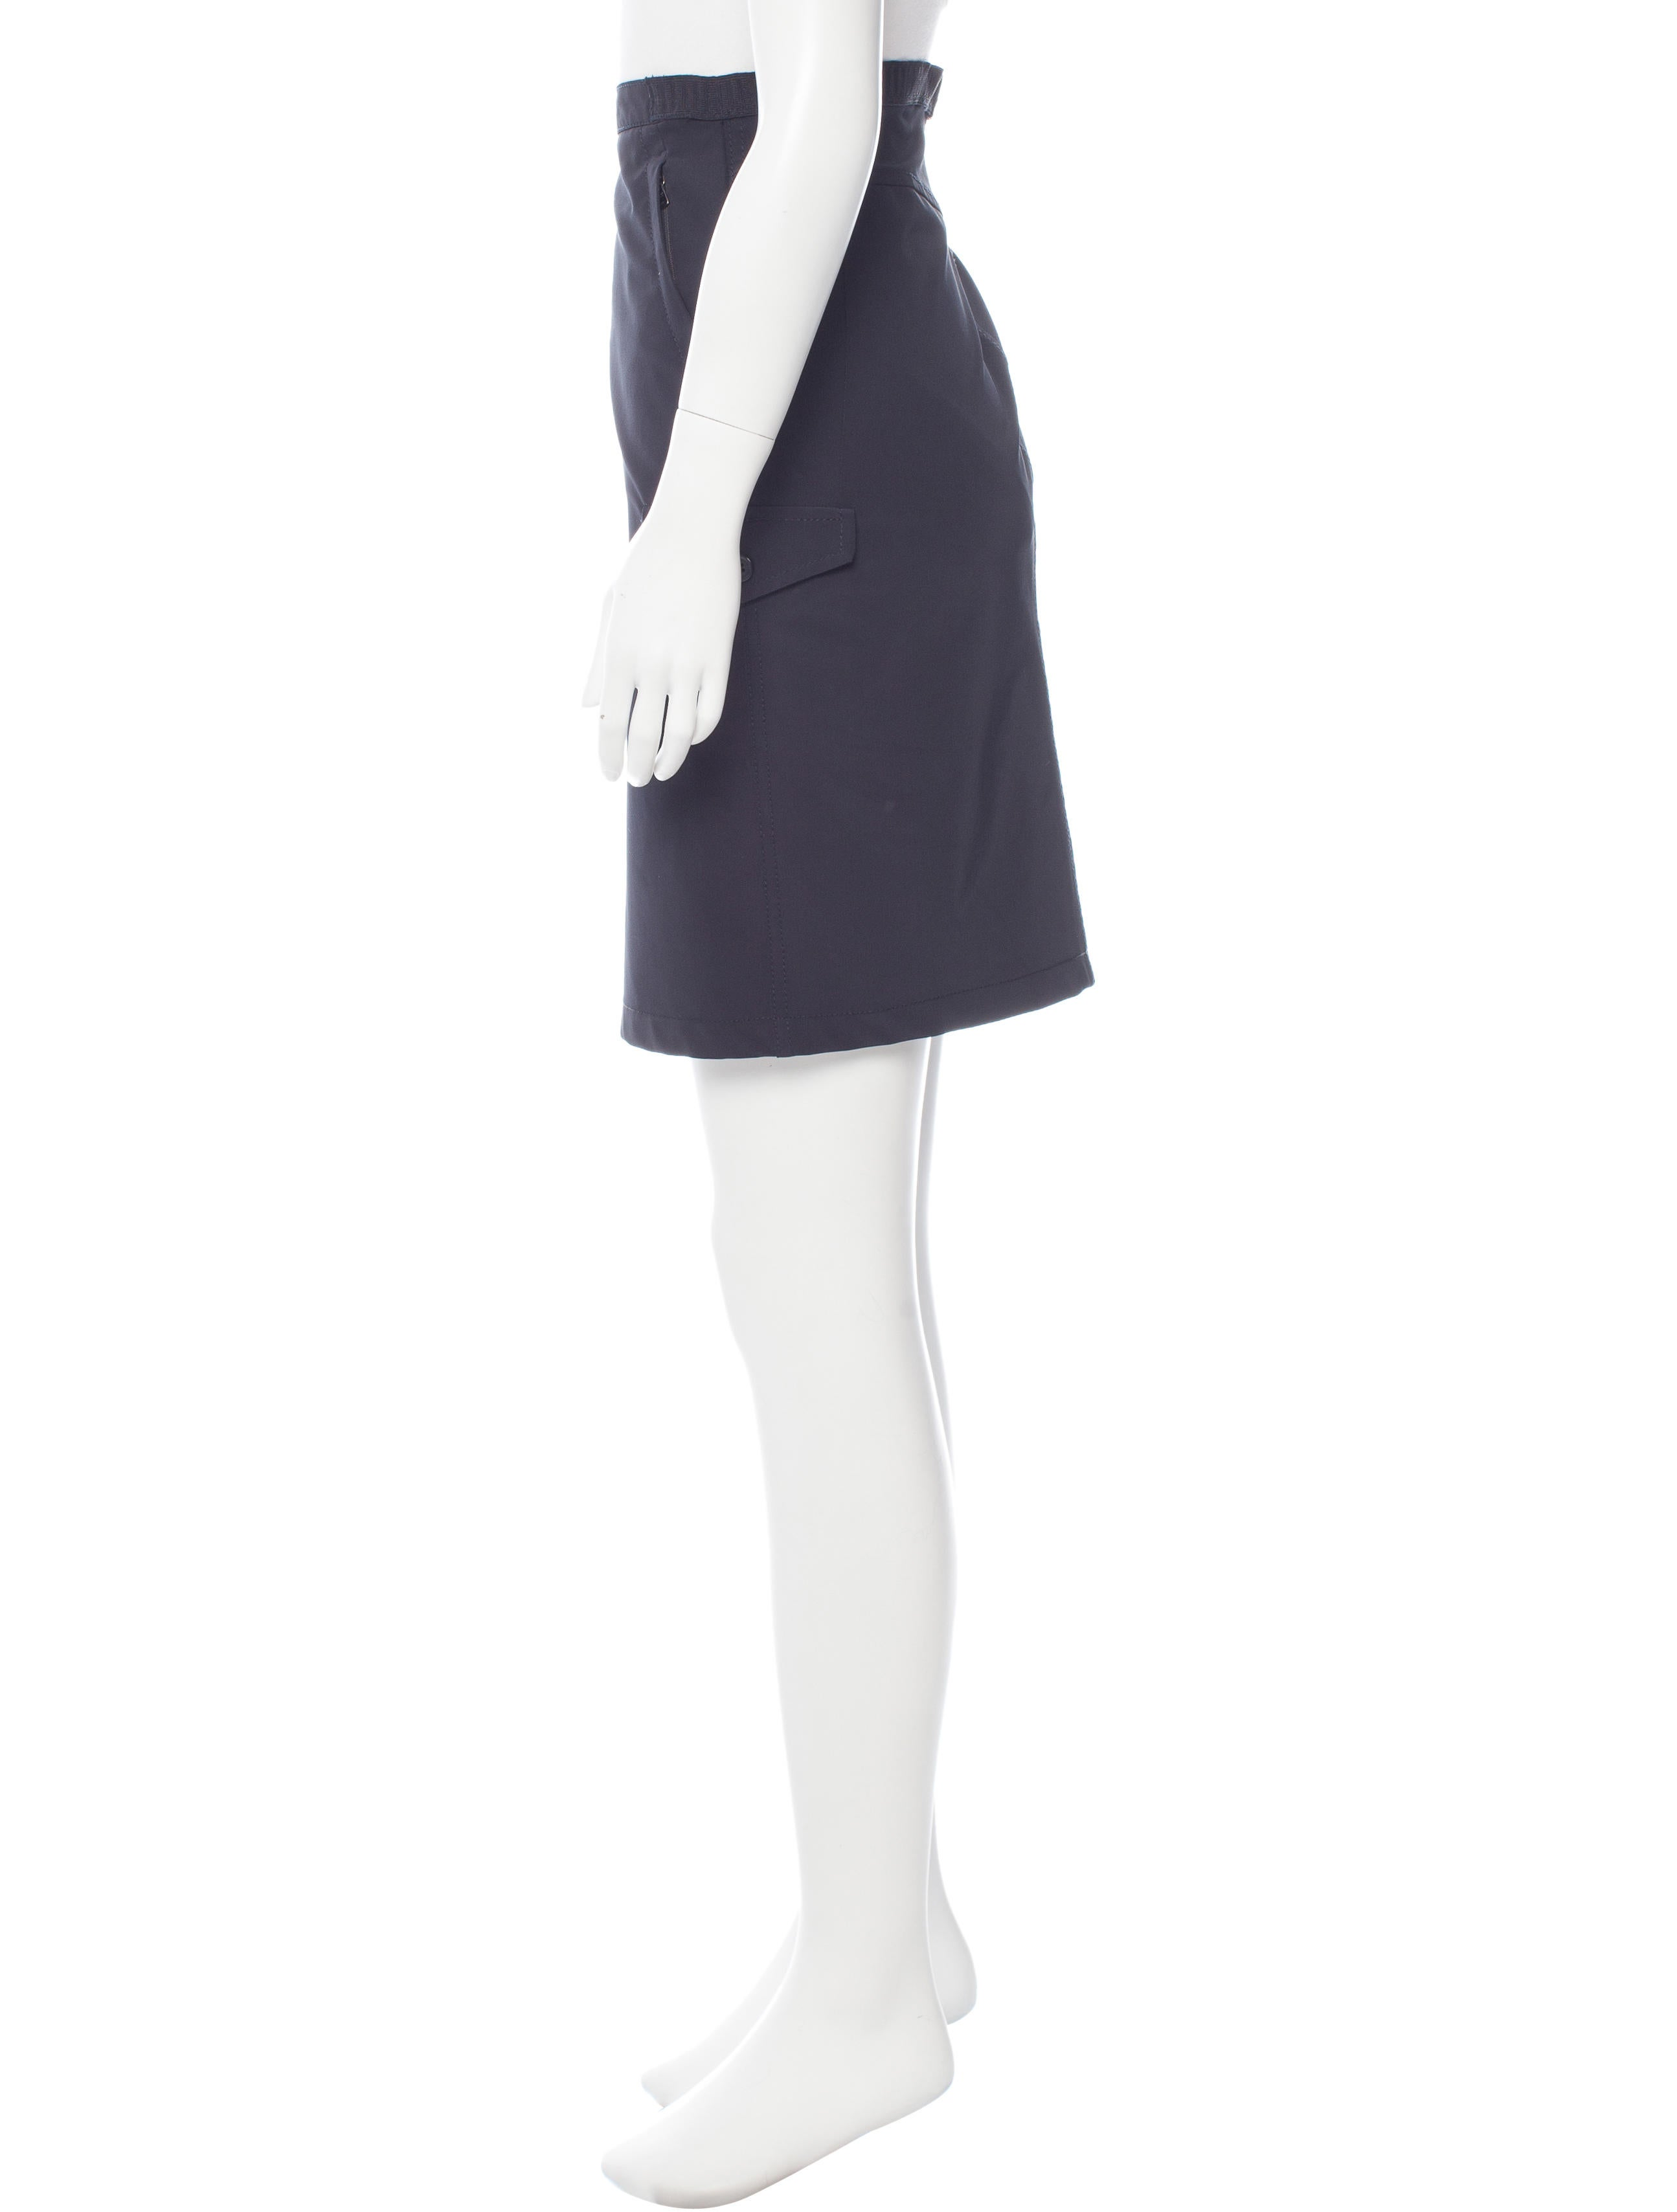 prada sport knee length pencil skirt clothing wpr39411